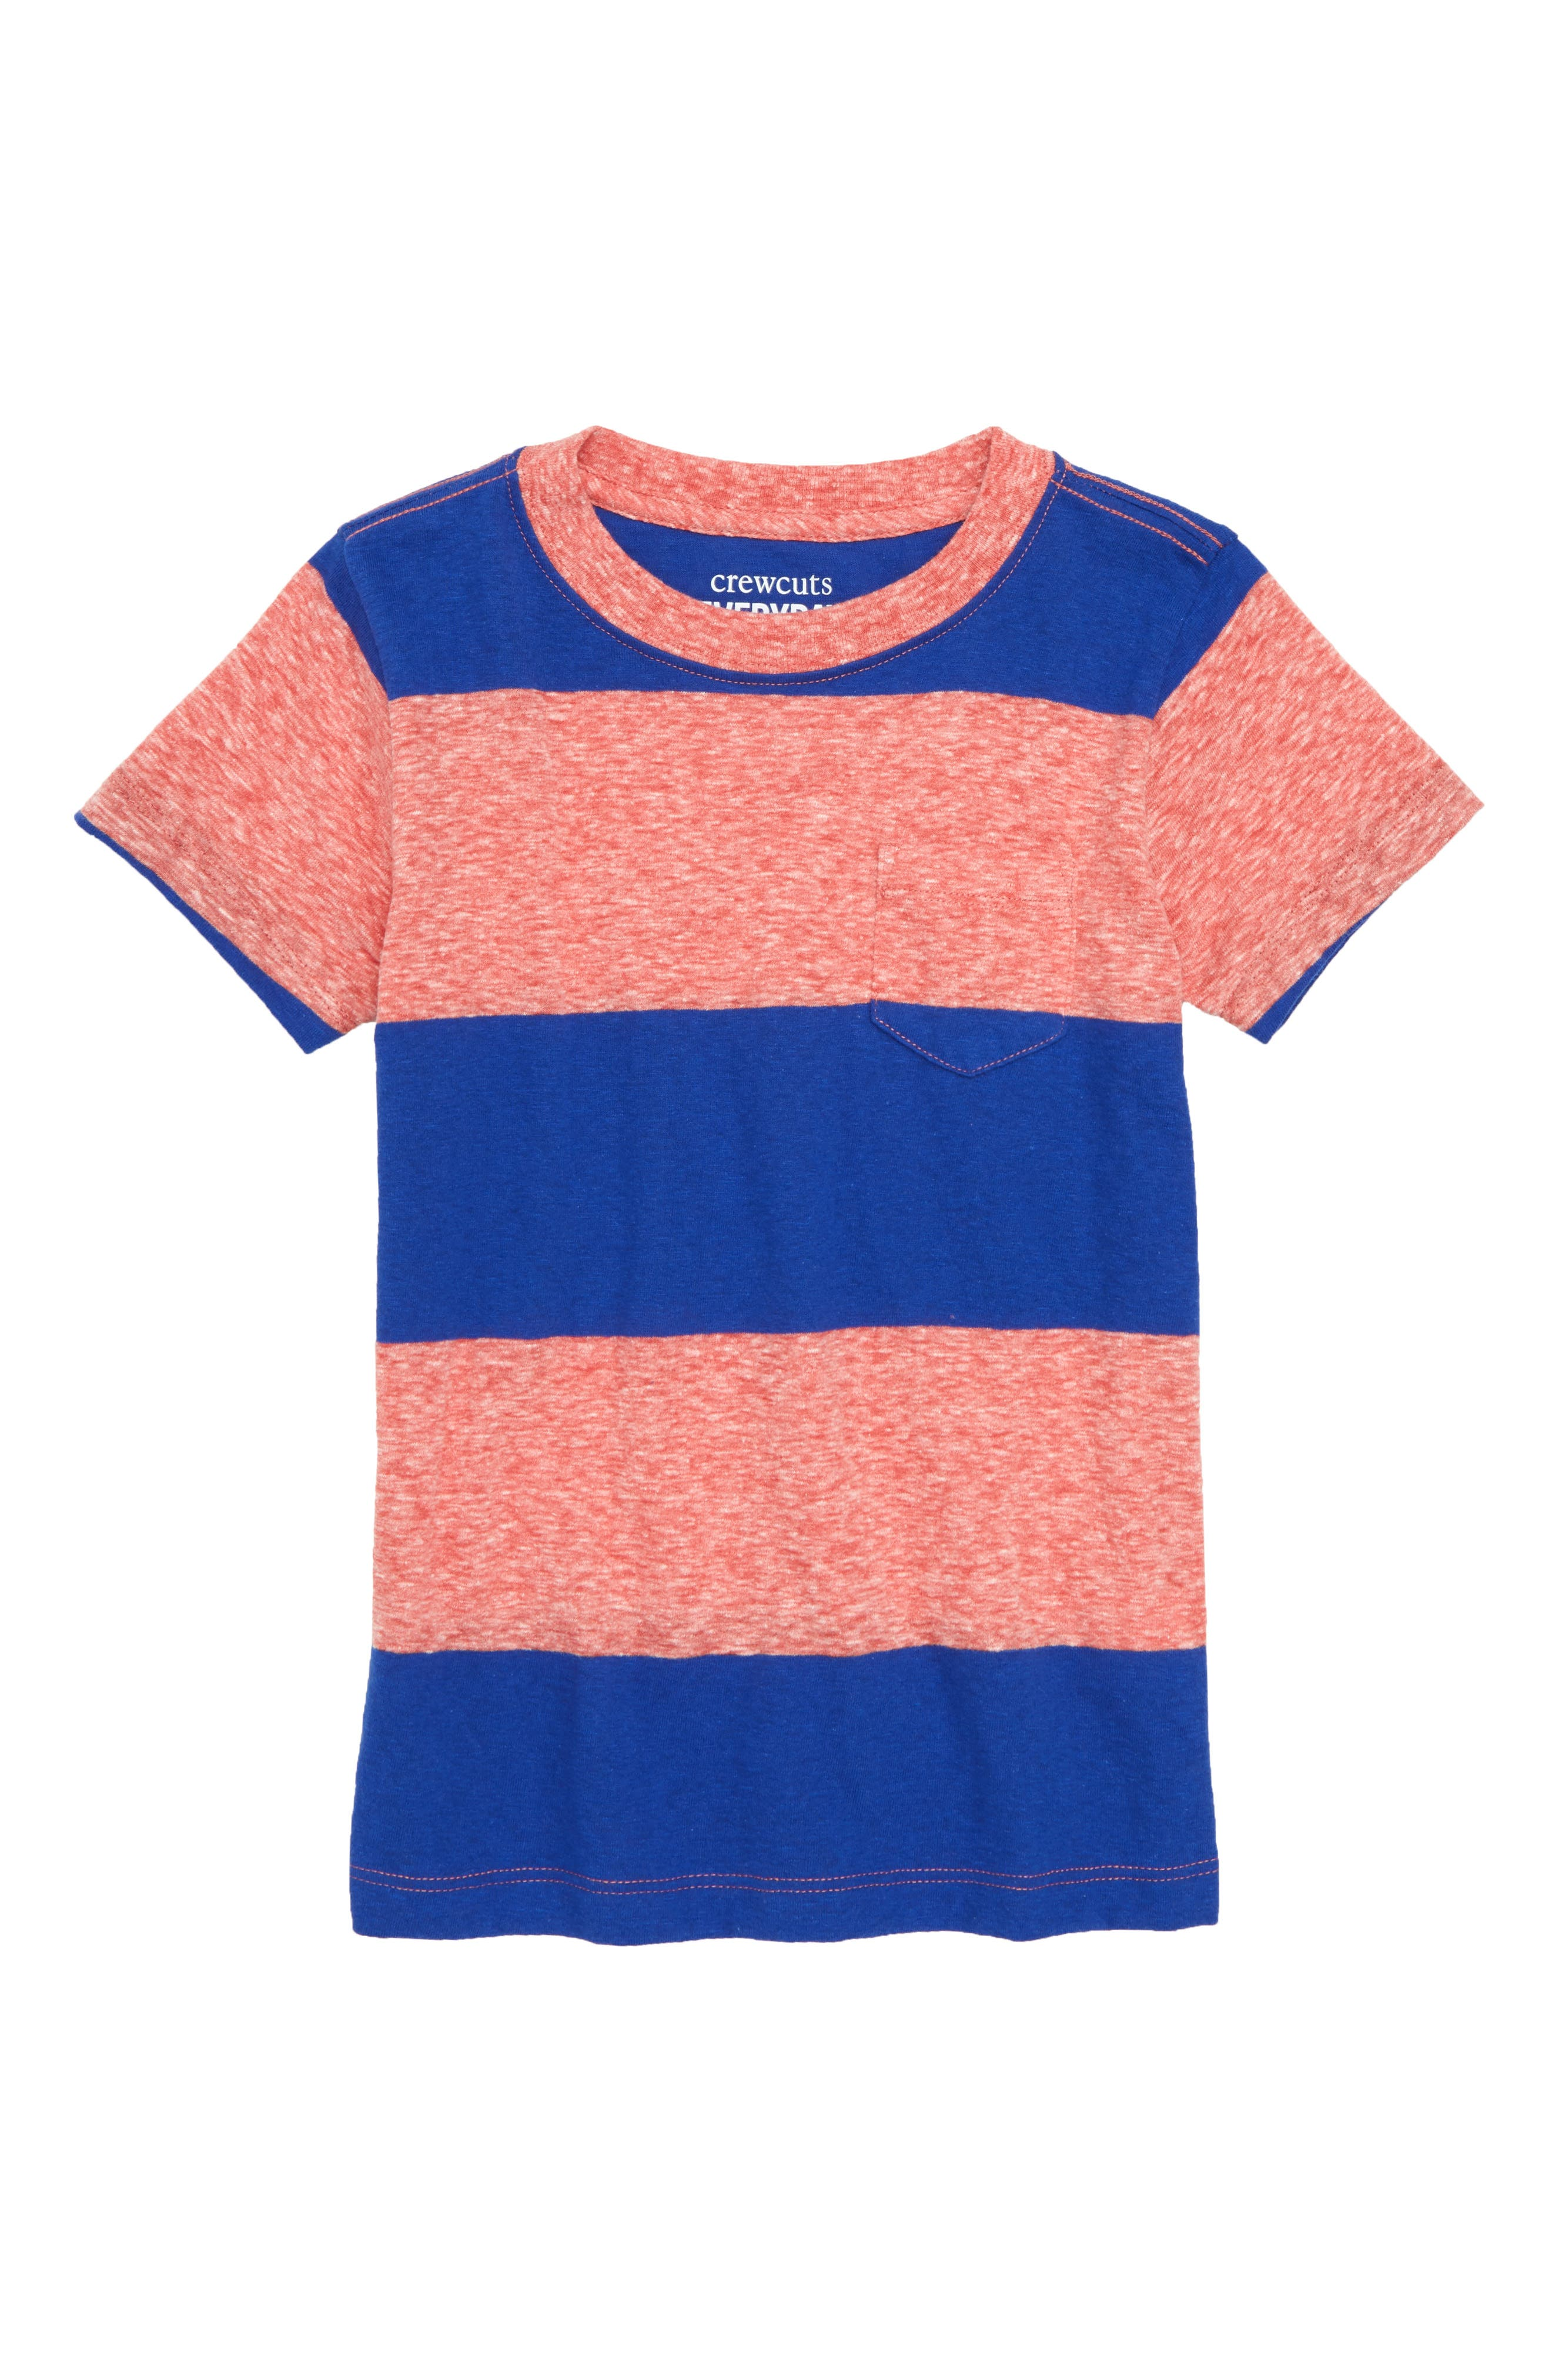 CREWCUTS BY J.CREW Rugby Stripe Shirt, Main, color, 600